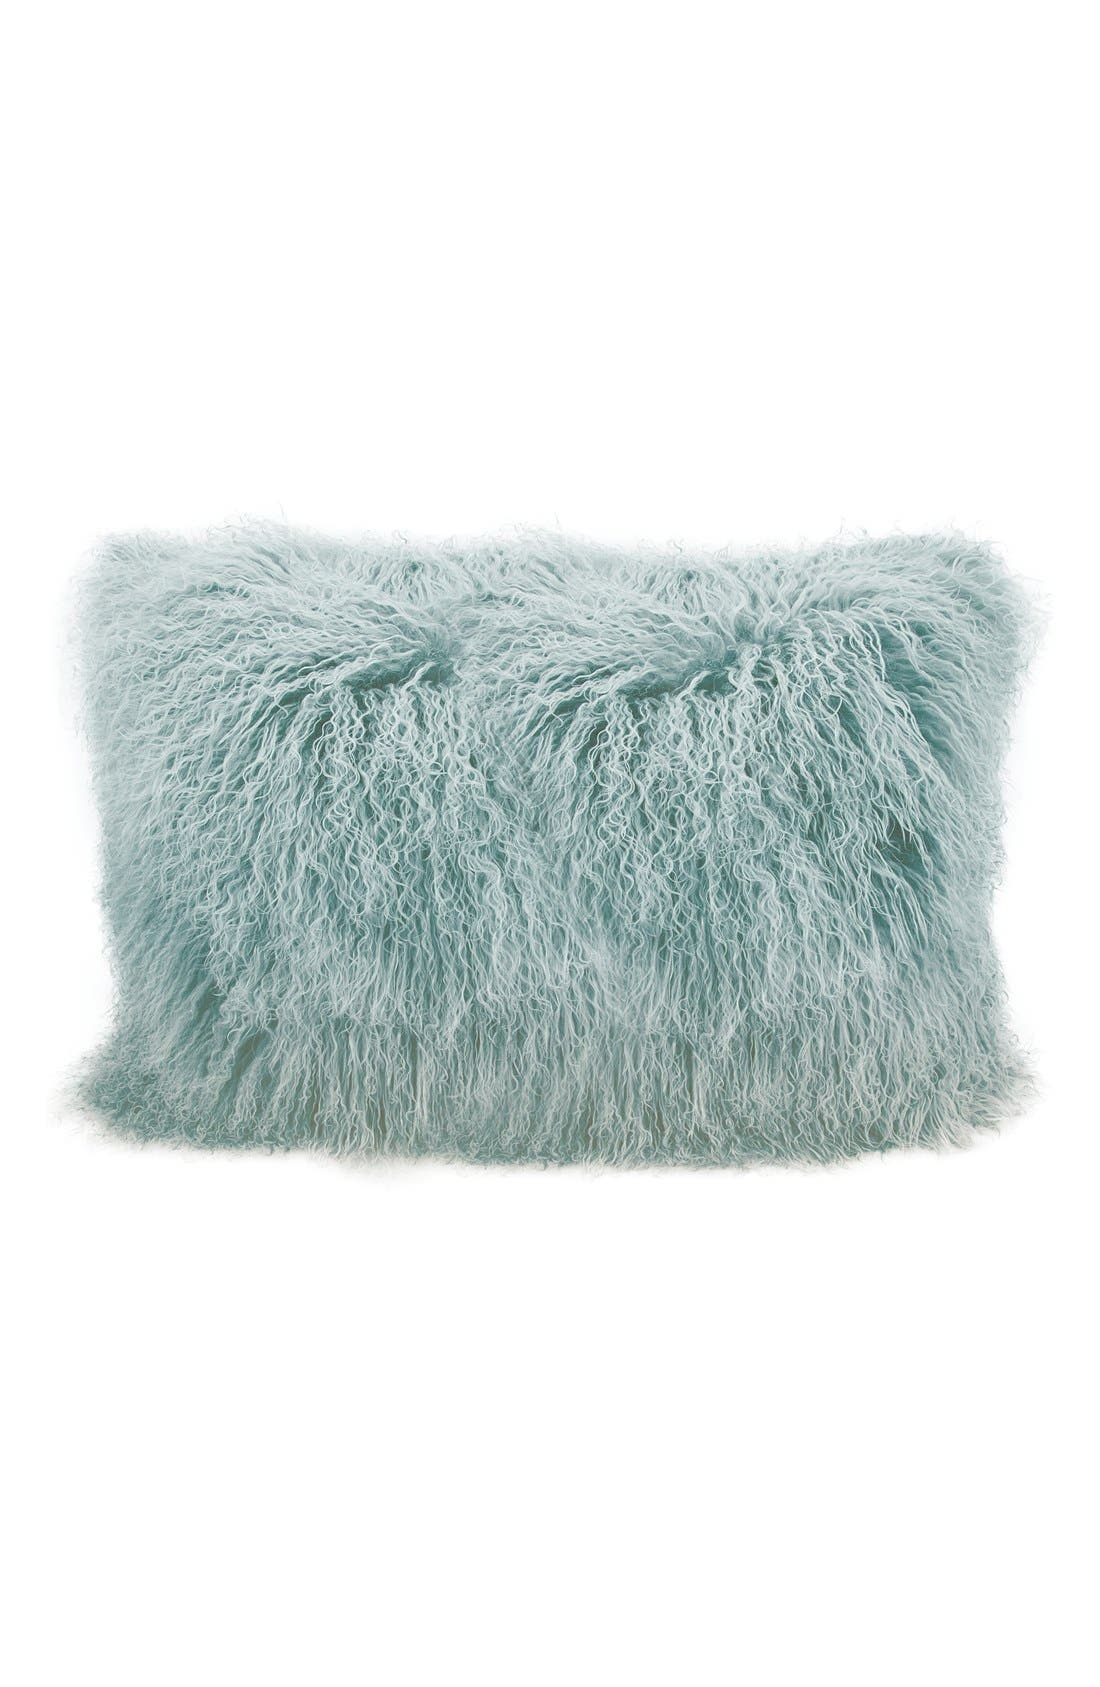 MINA VICTORY Genuine Tibetan Shearling Pillow